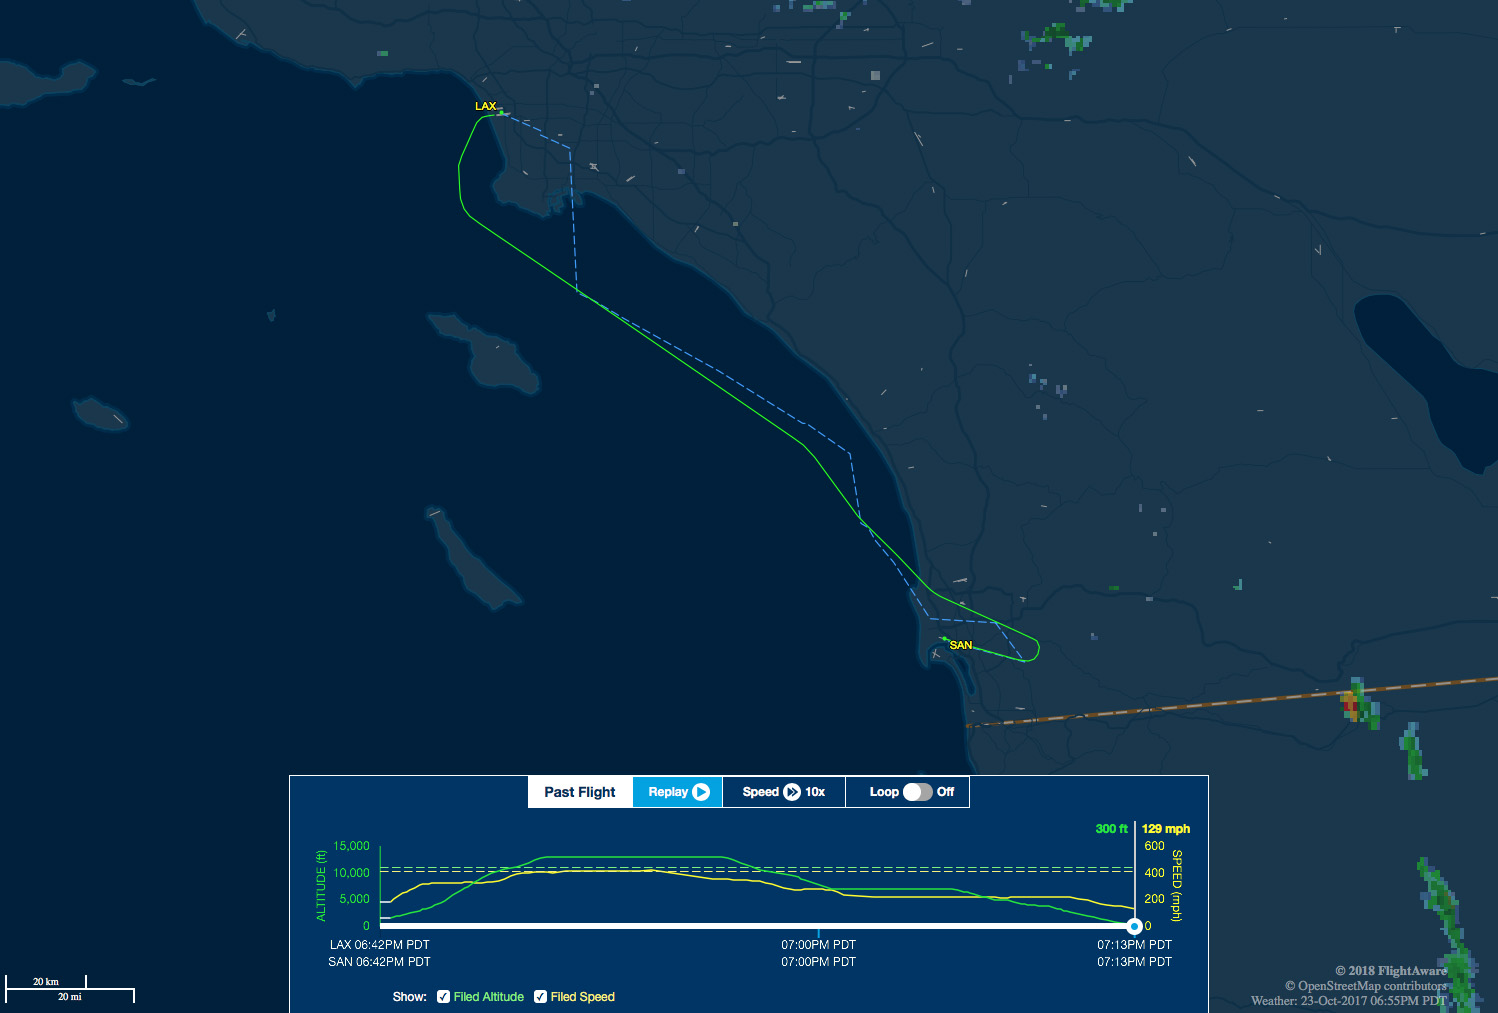 LAX to SAN route map